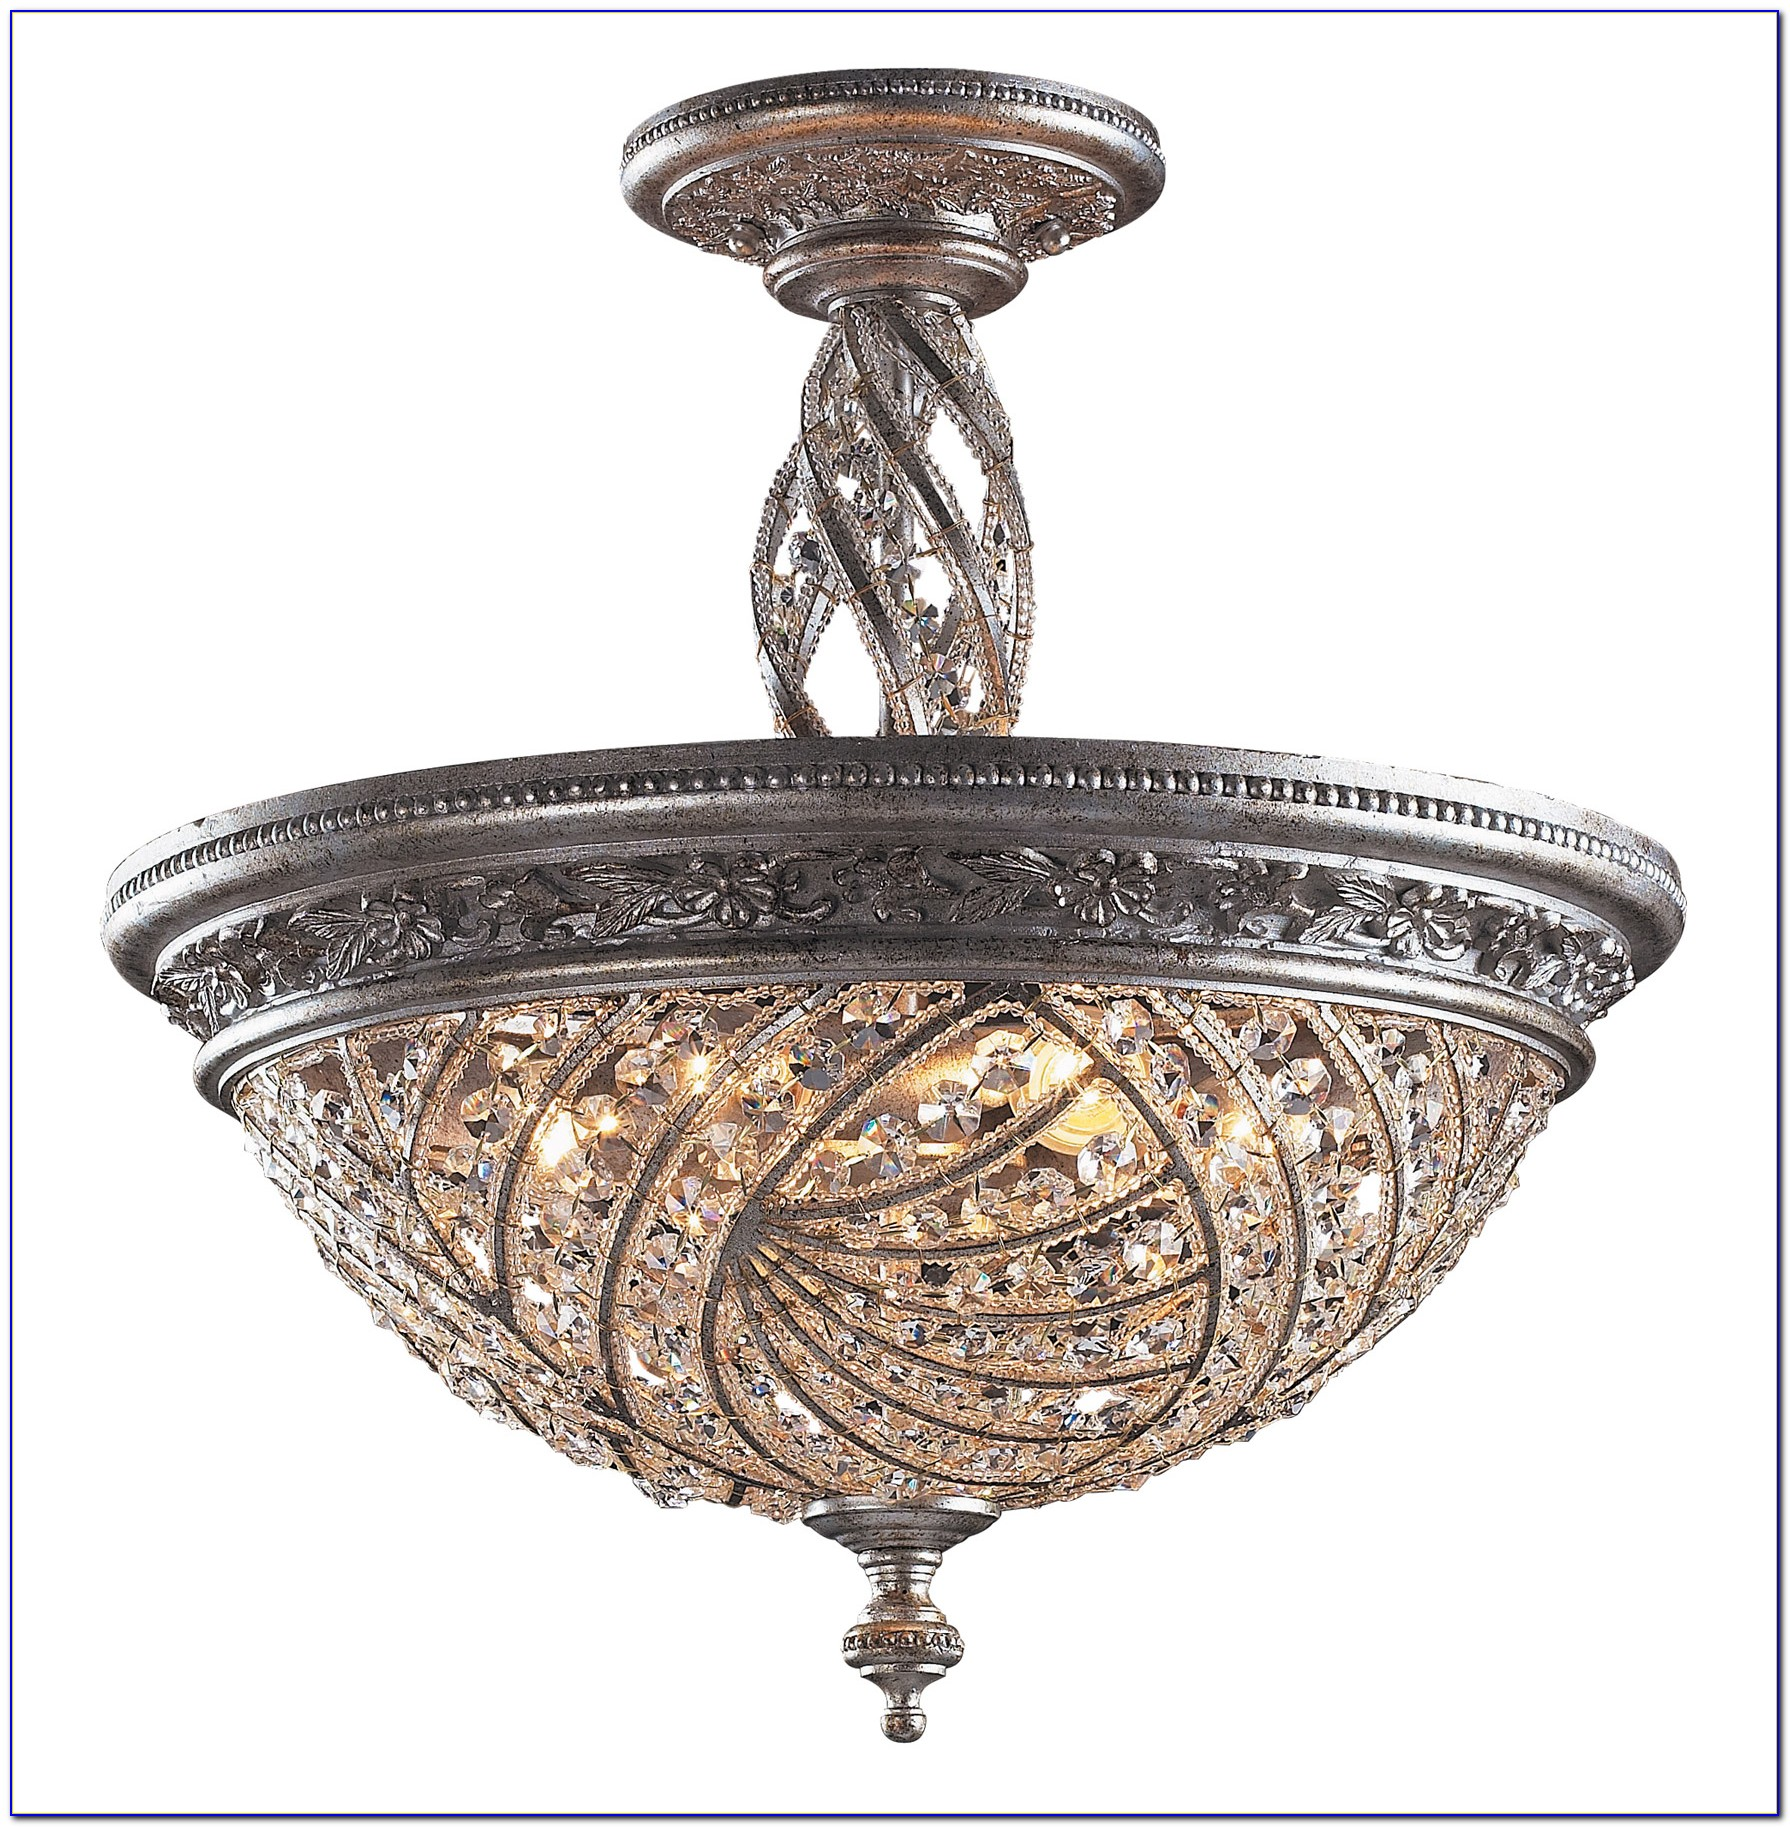 Waterford Crystal Ceiling Light Fixture